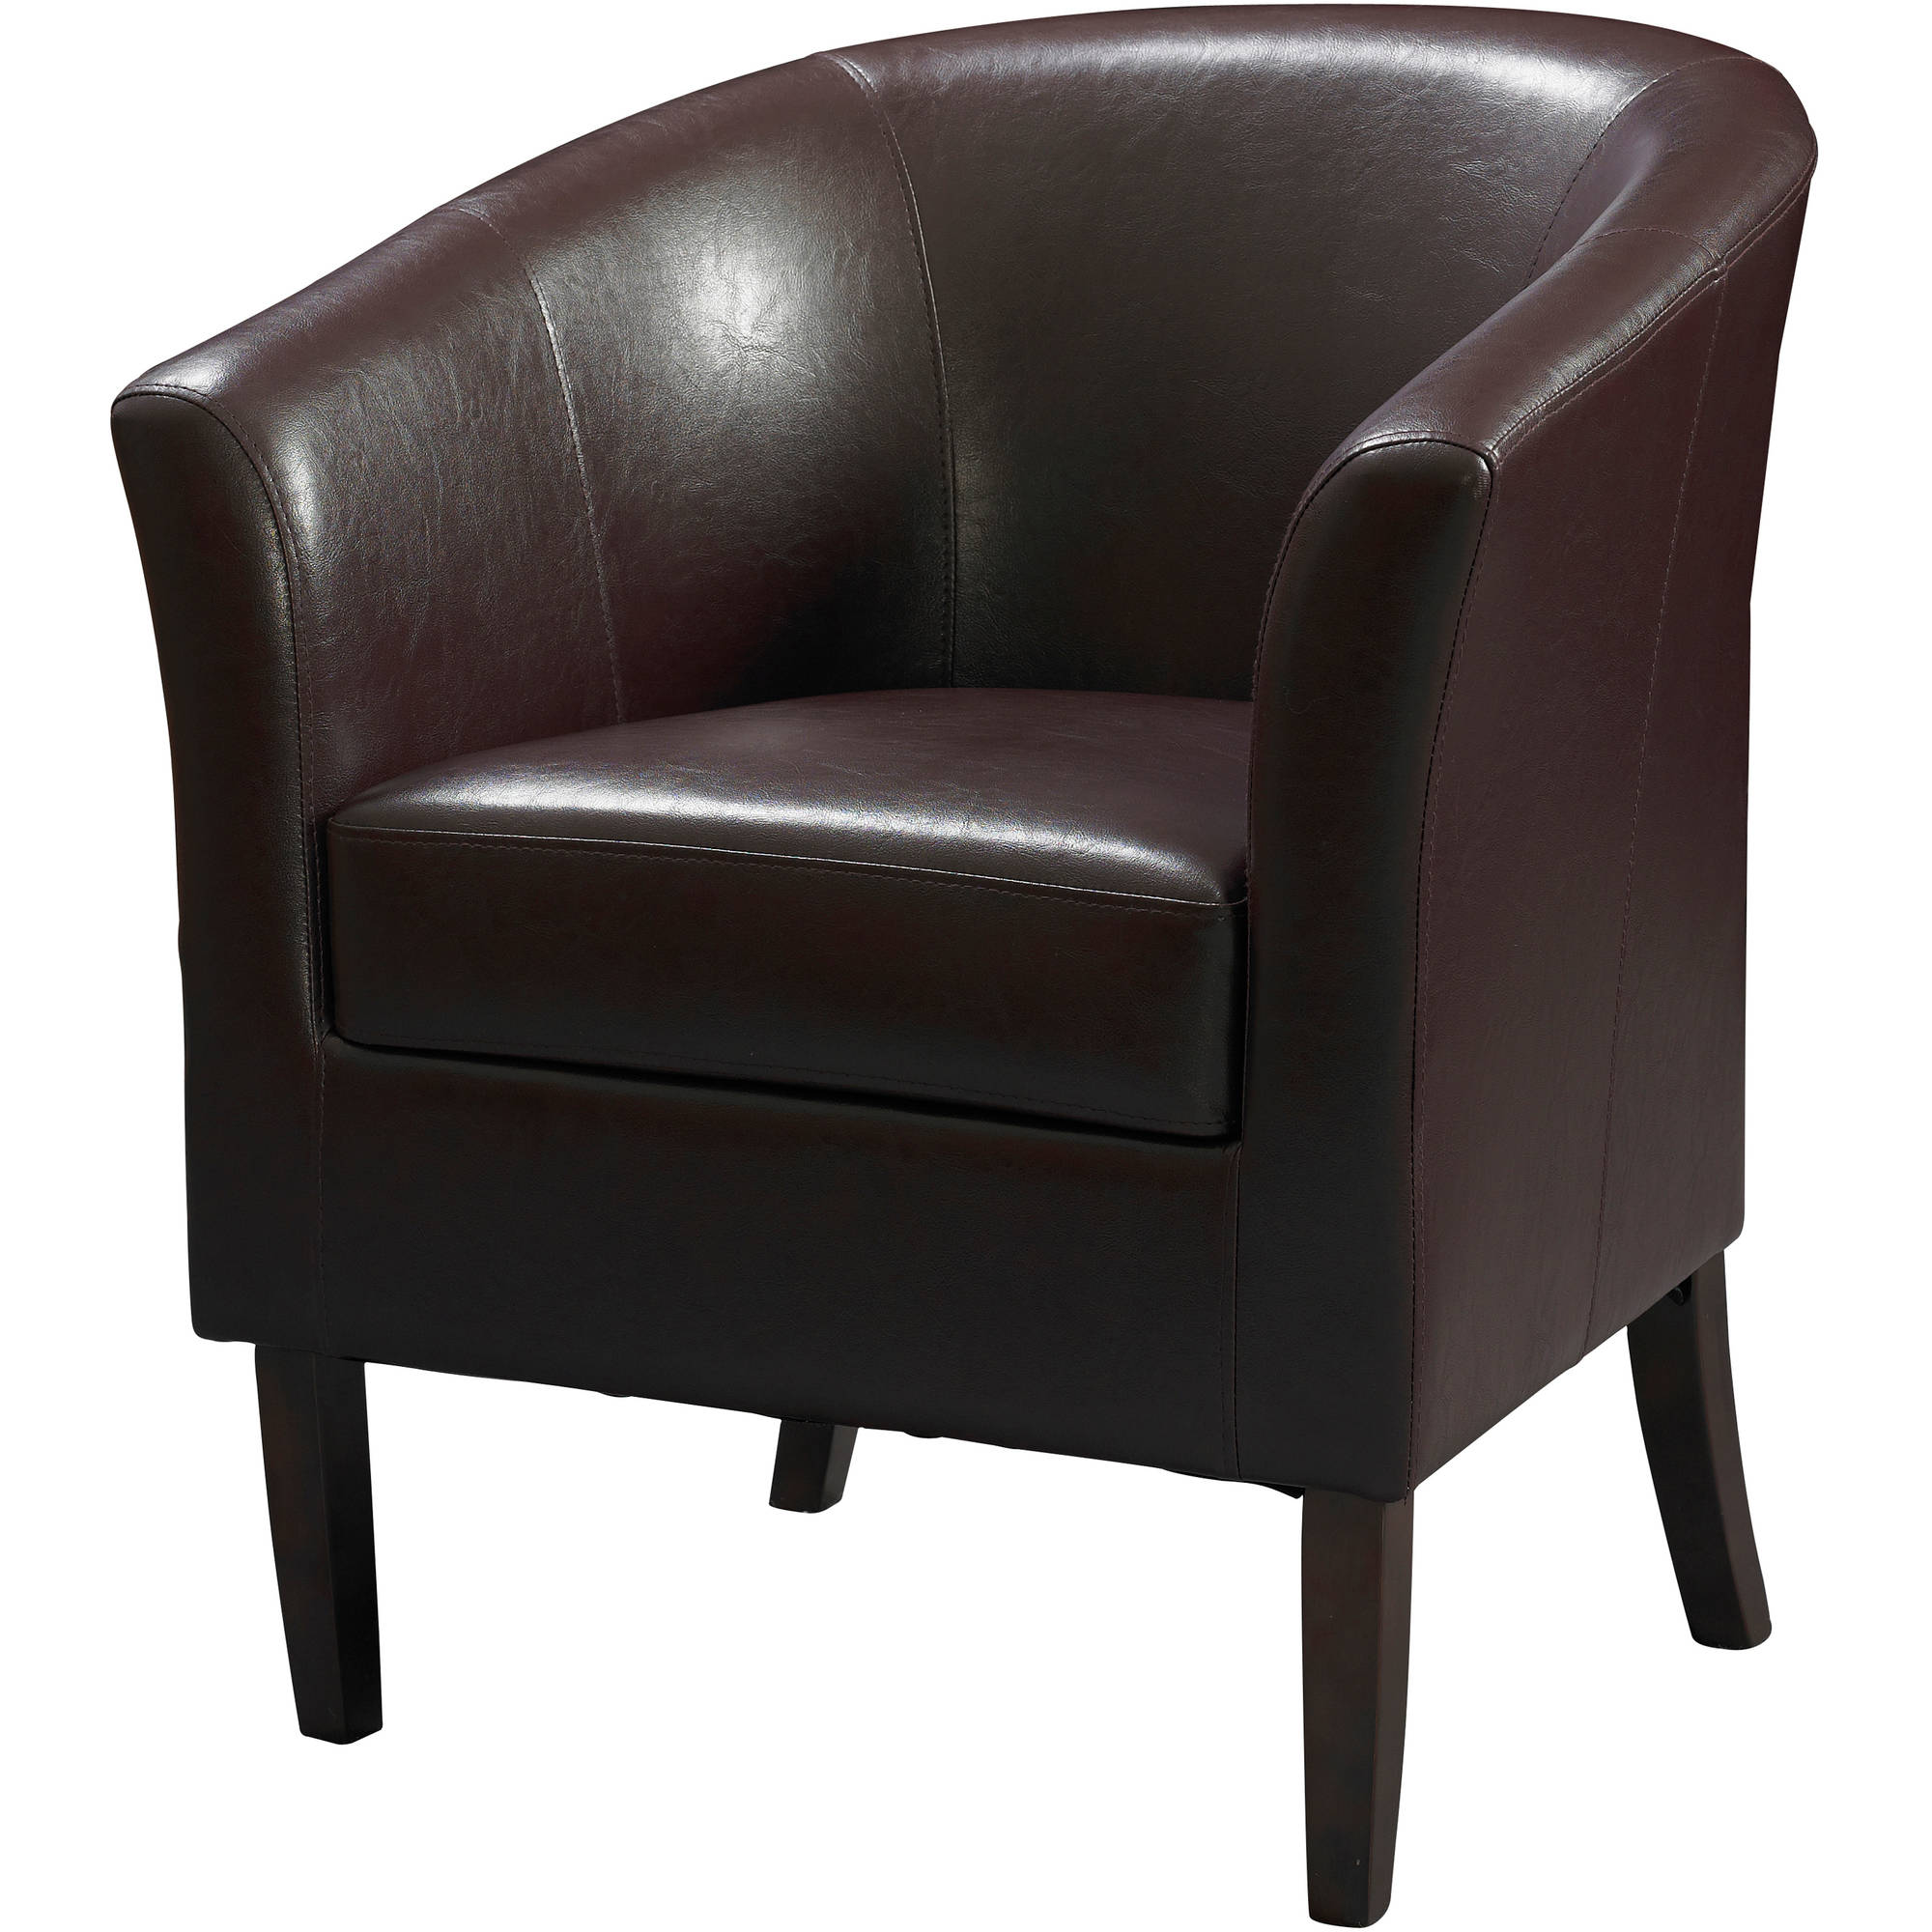 Linon Home Decor Simon Club Chair, Multiple Colors